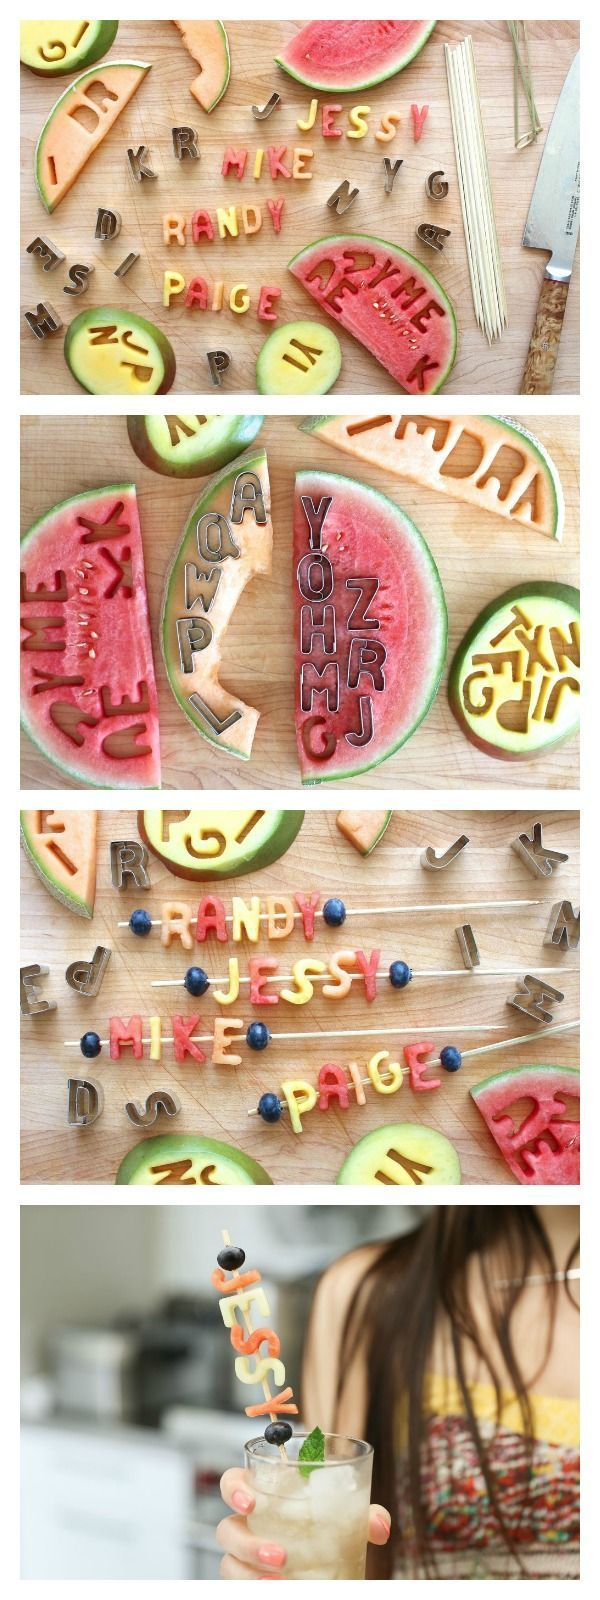 Friuit Name Skewers are the perfect way to keep cups claimed at parties!  Fun for kids to make and fun to eat when your done!